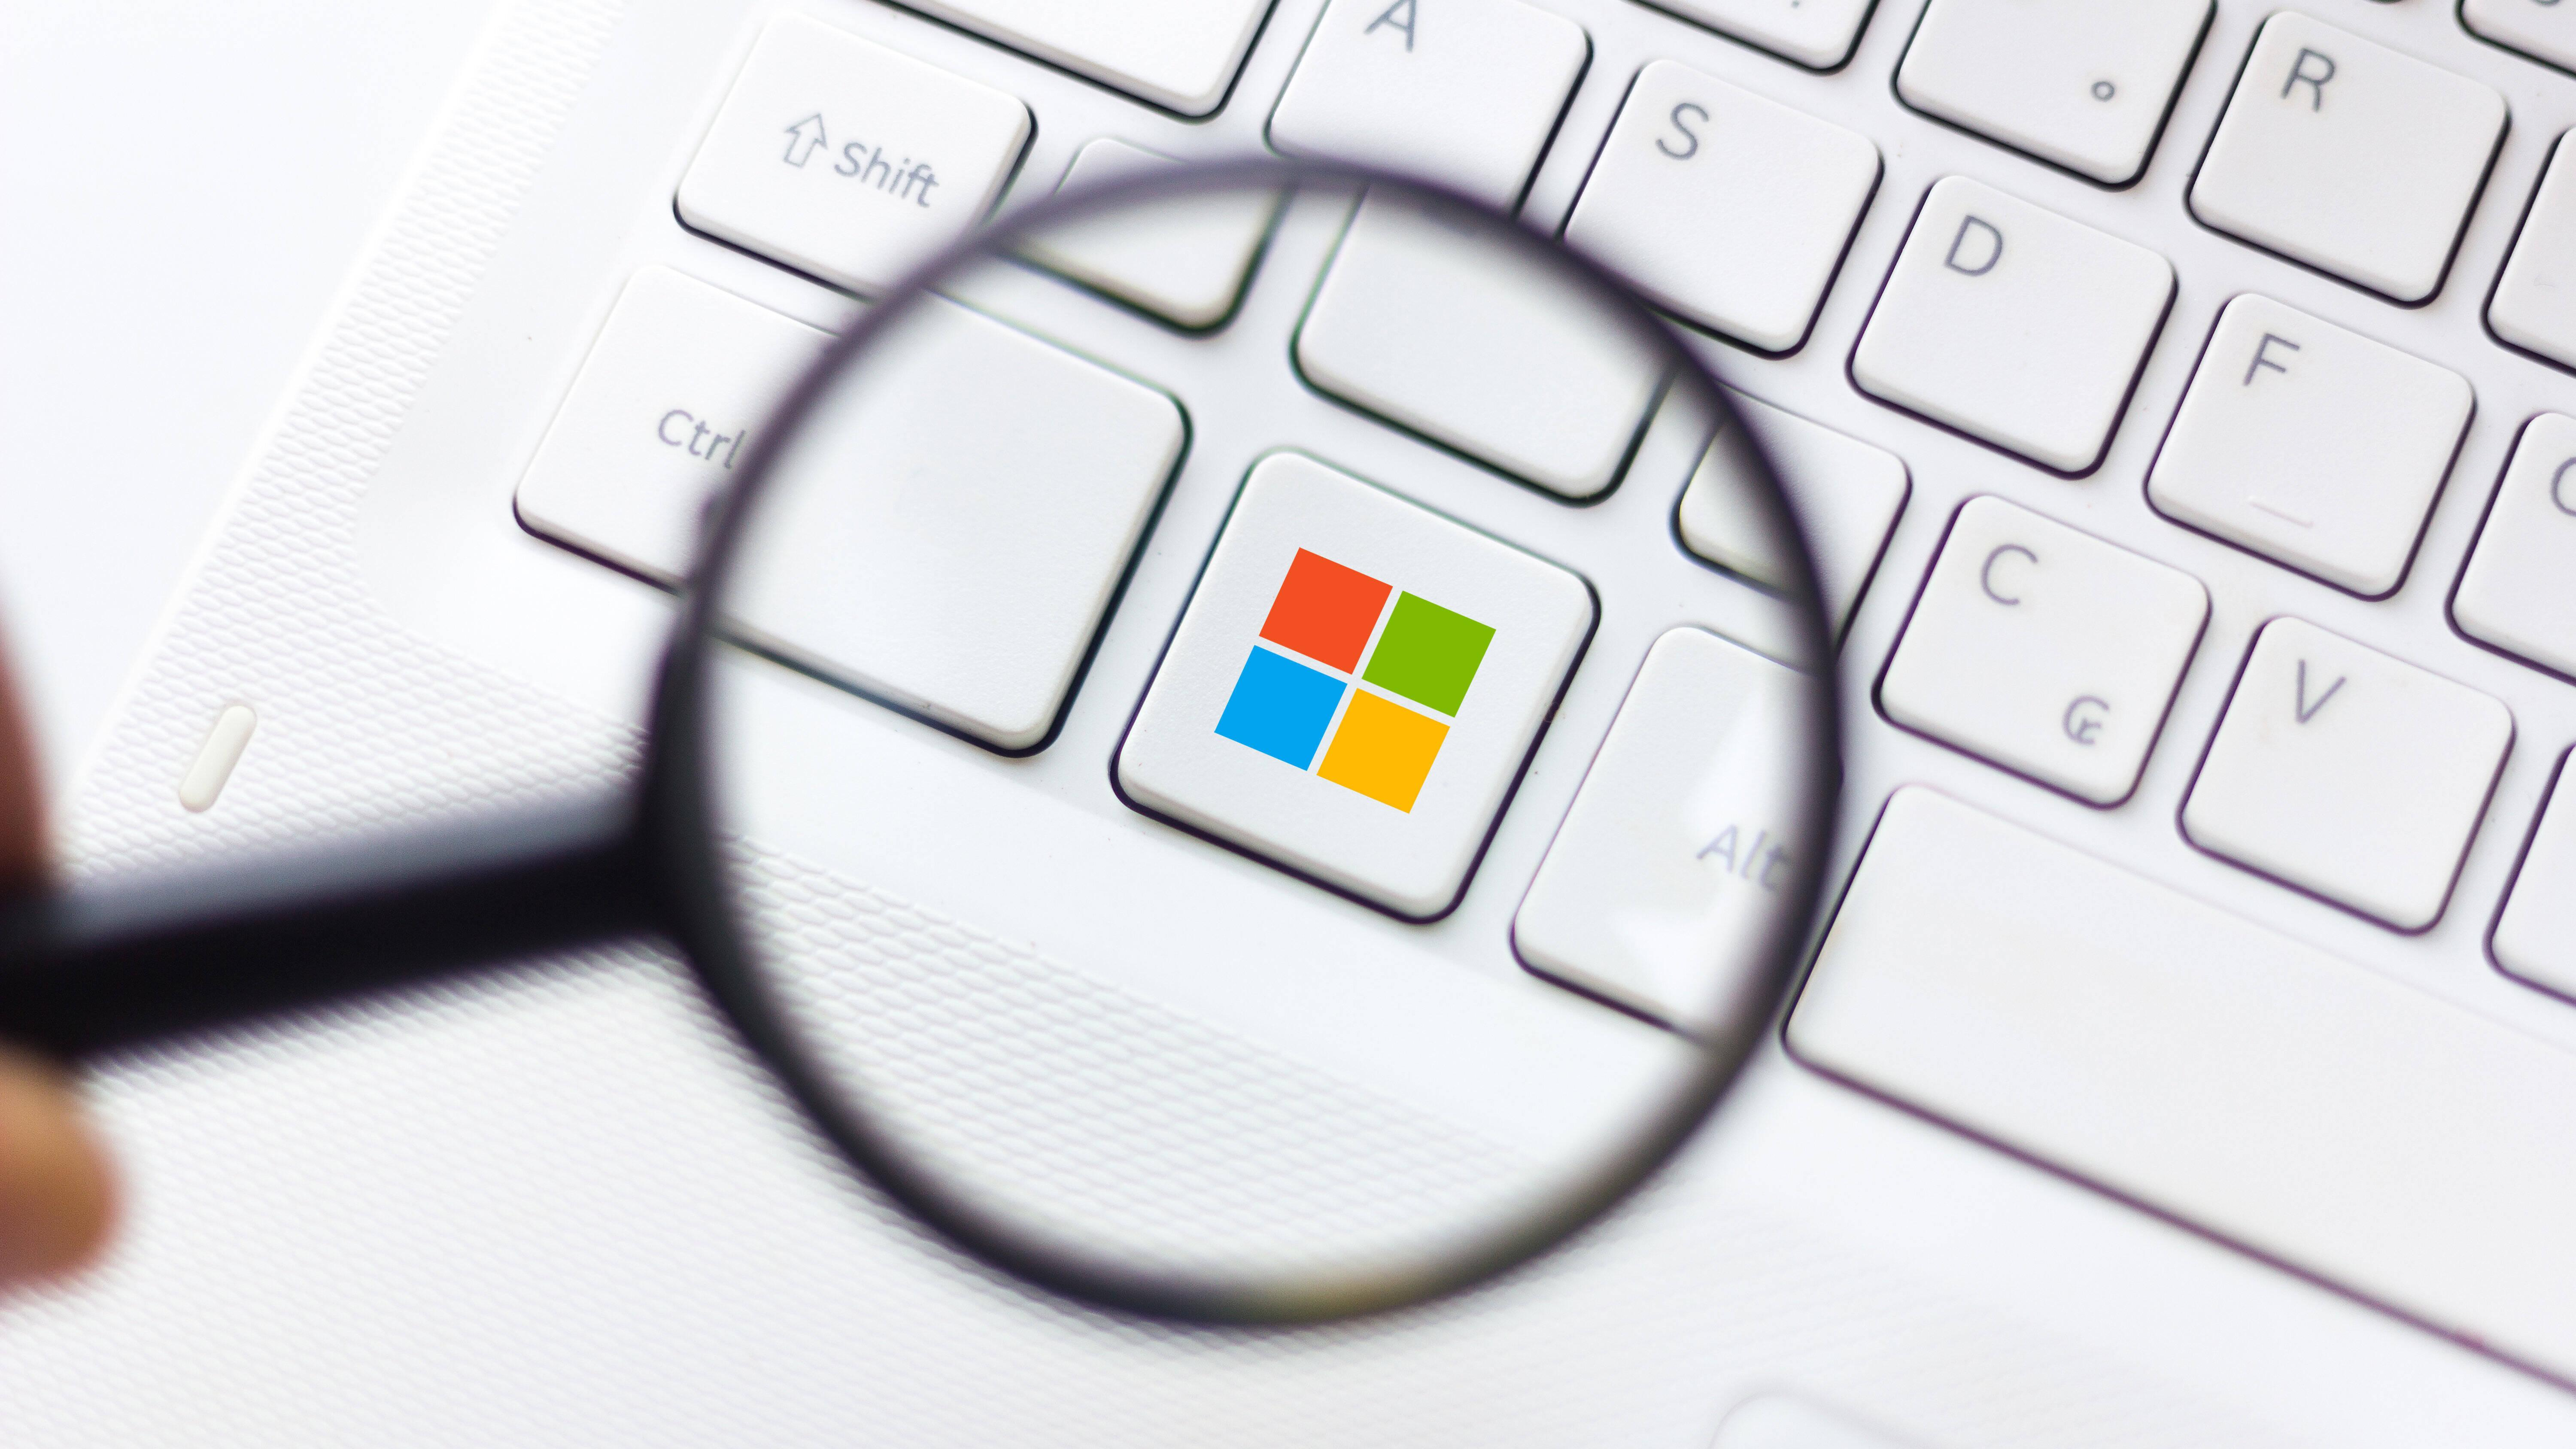 Windows 10: Key auslesen - so geht's